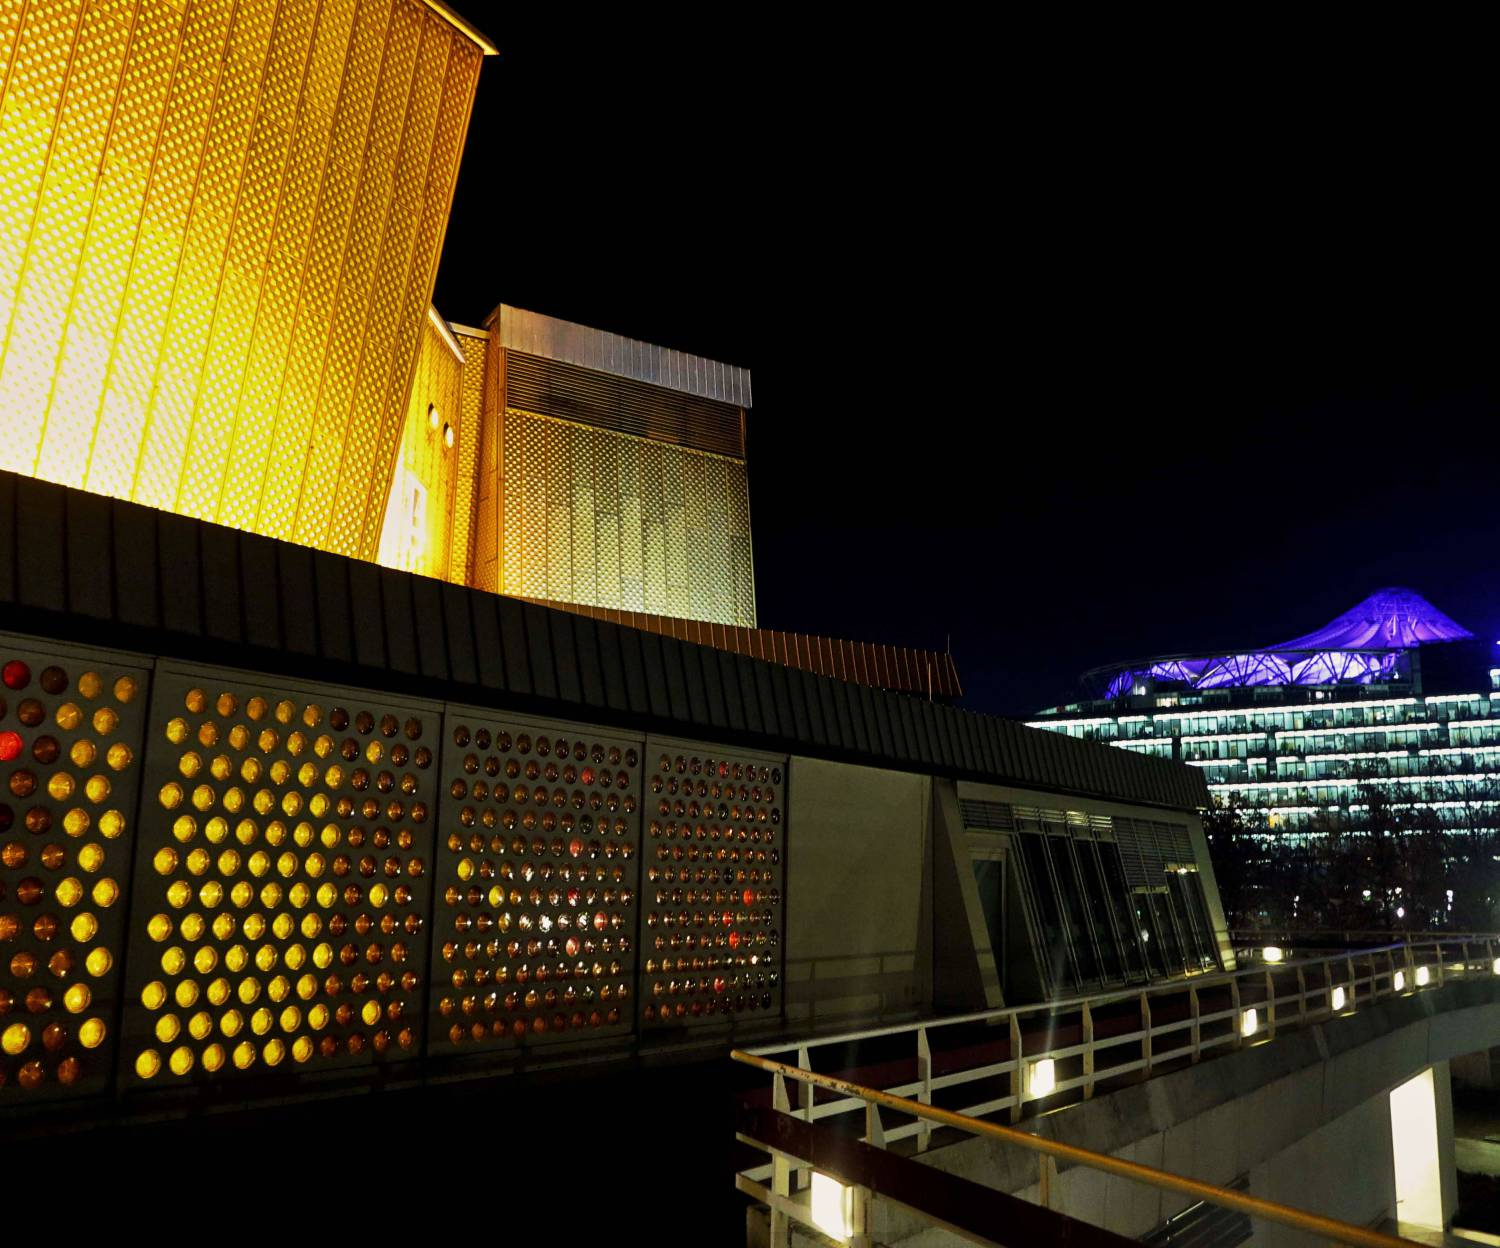 Berliner Philharmonie and Potsdamer Platz